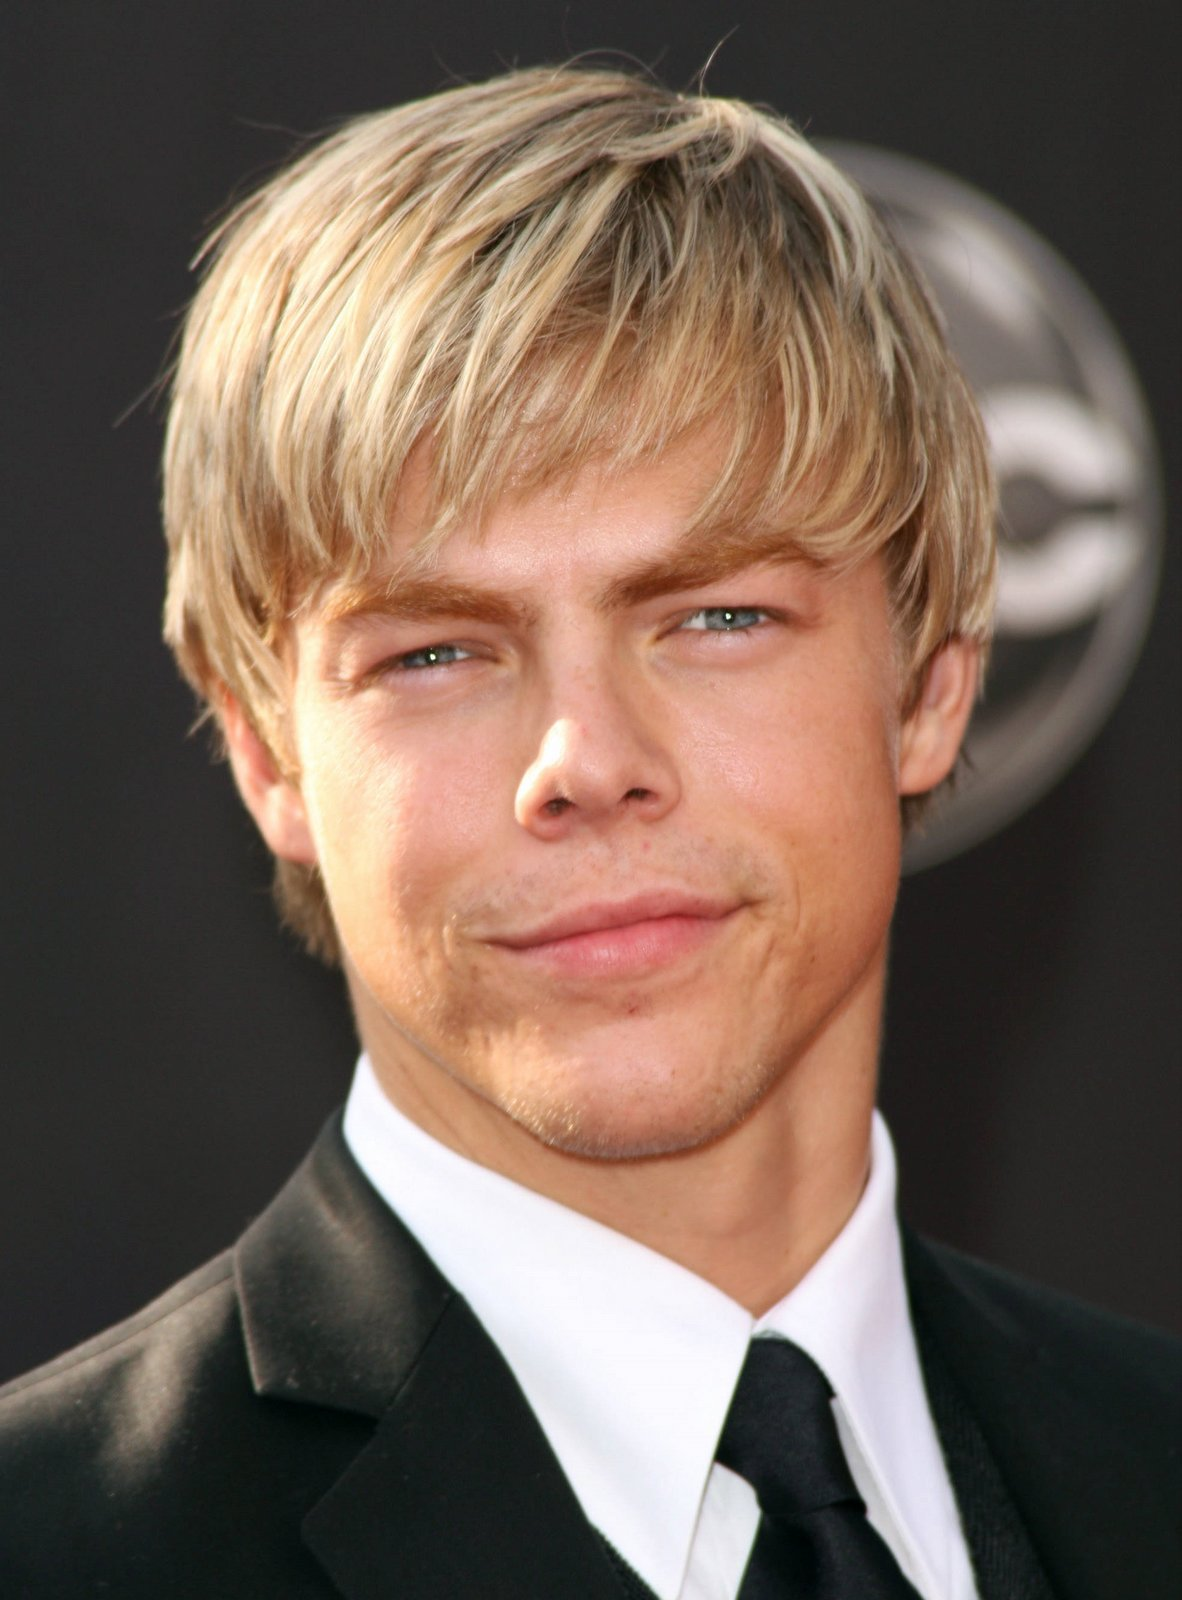 The Best Short Bob Hairstyles Blonde Highlights In Brown Hair Men Pictures